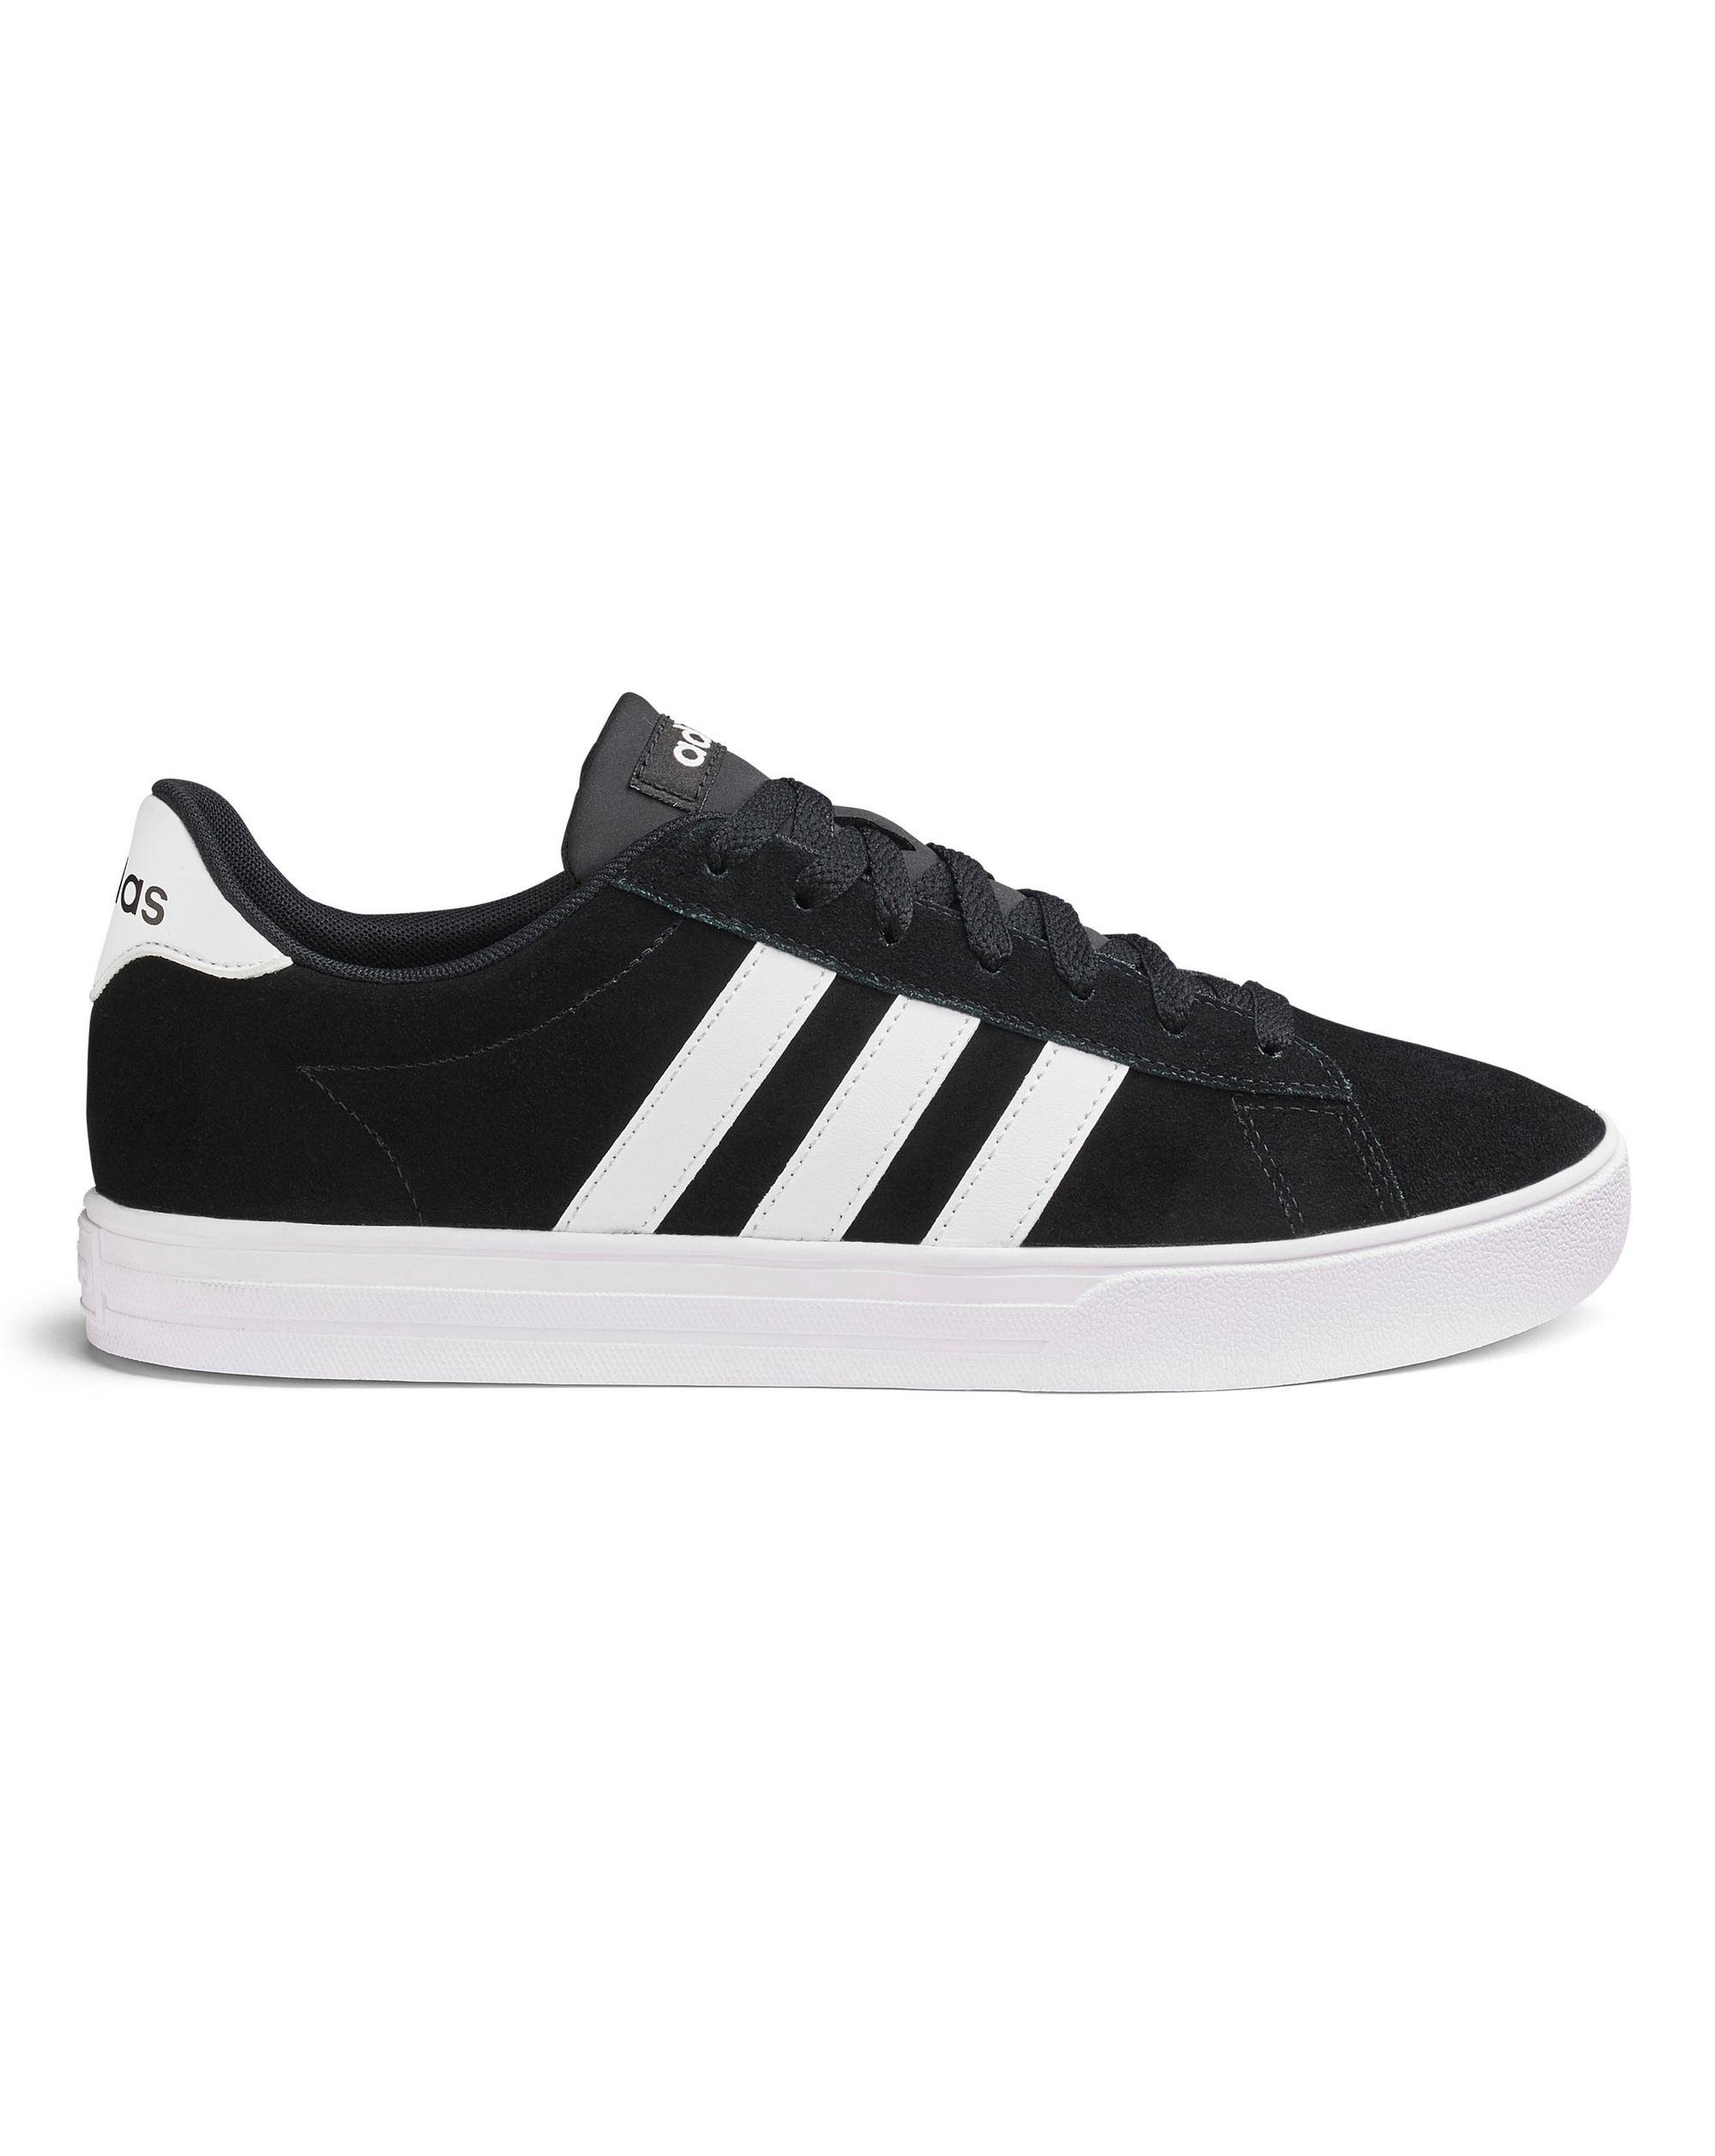 Adidas Daily 2.0 Trainers: Black: 6